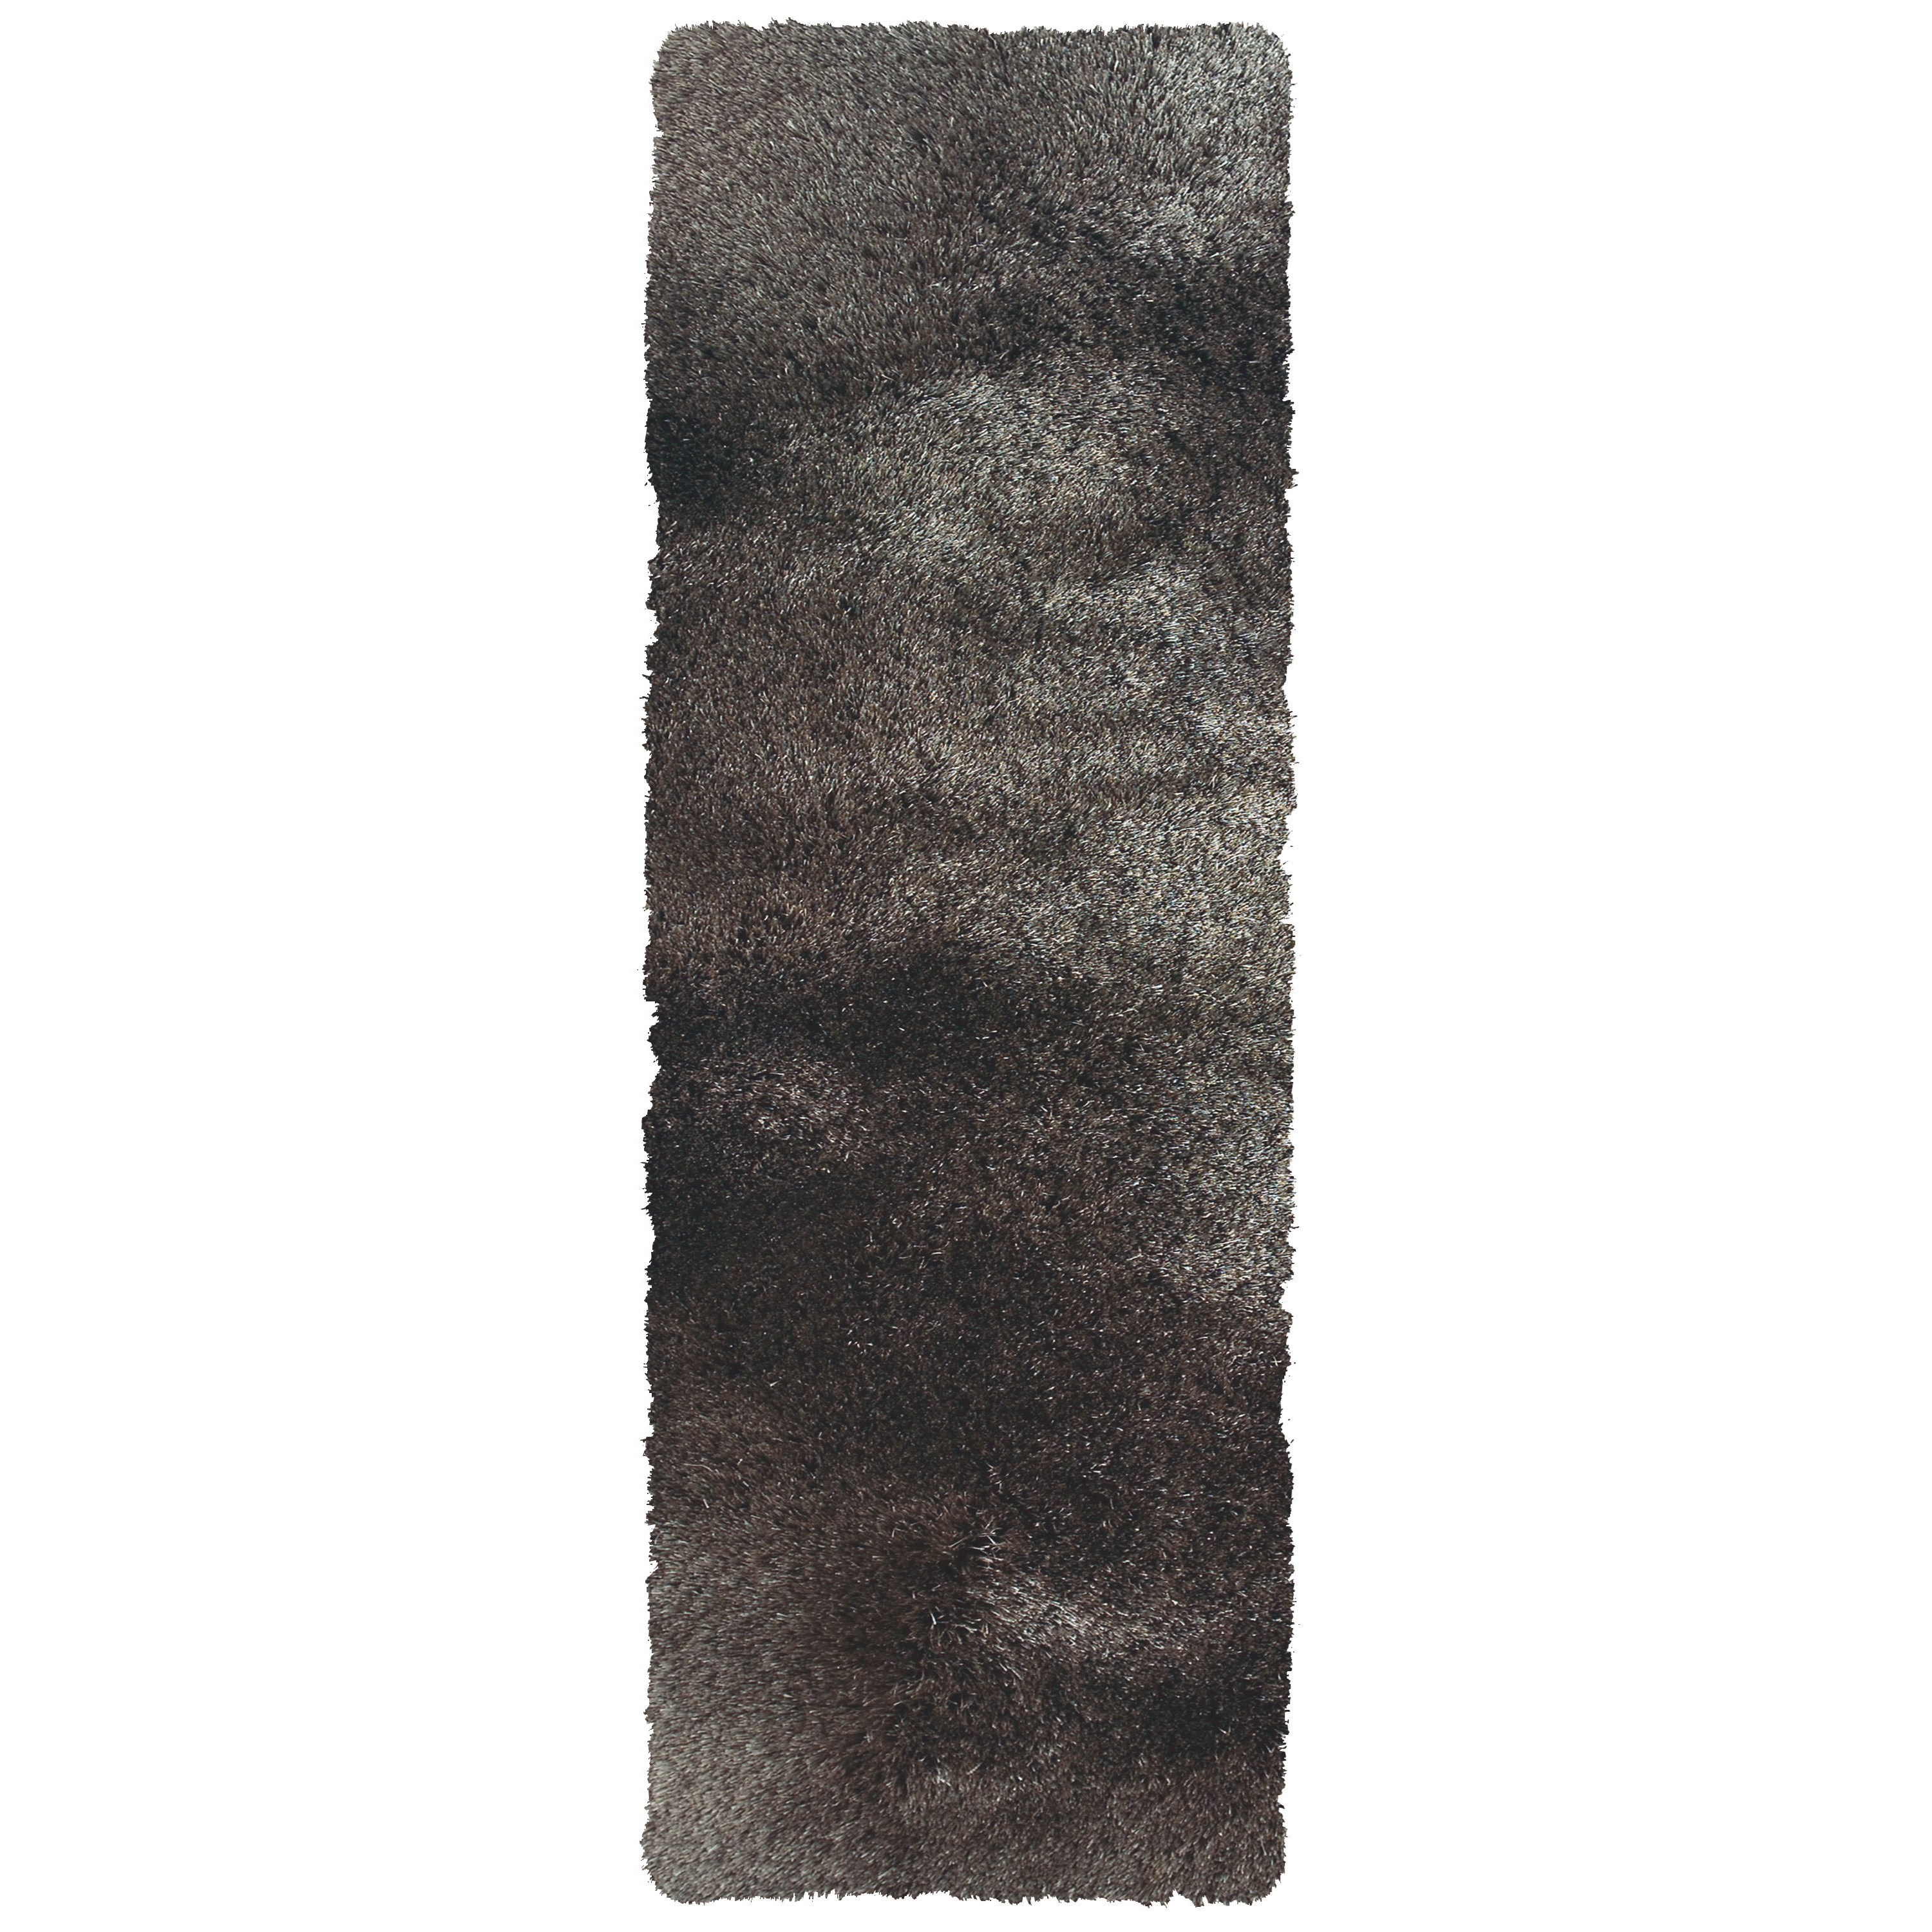 """Indochine Gray 2'-6"""" X 6' Runner Rug by Feizy Rugs at Jacksonville Furniture Mart"""